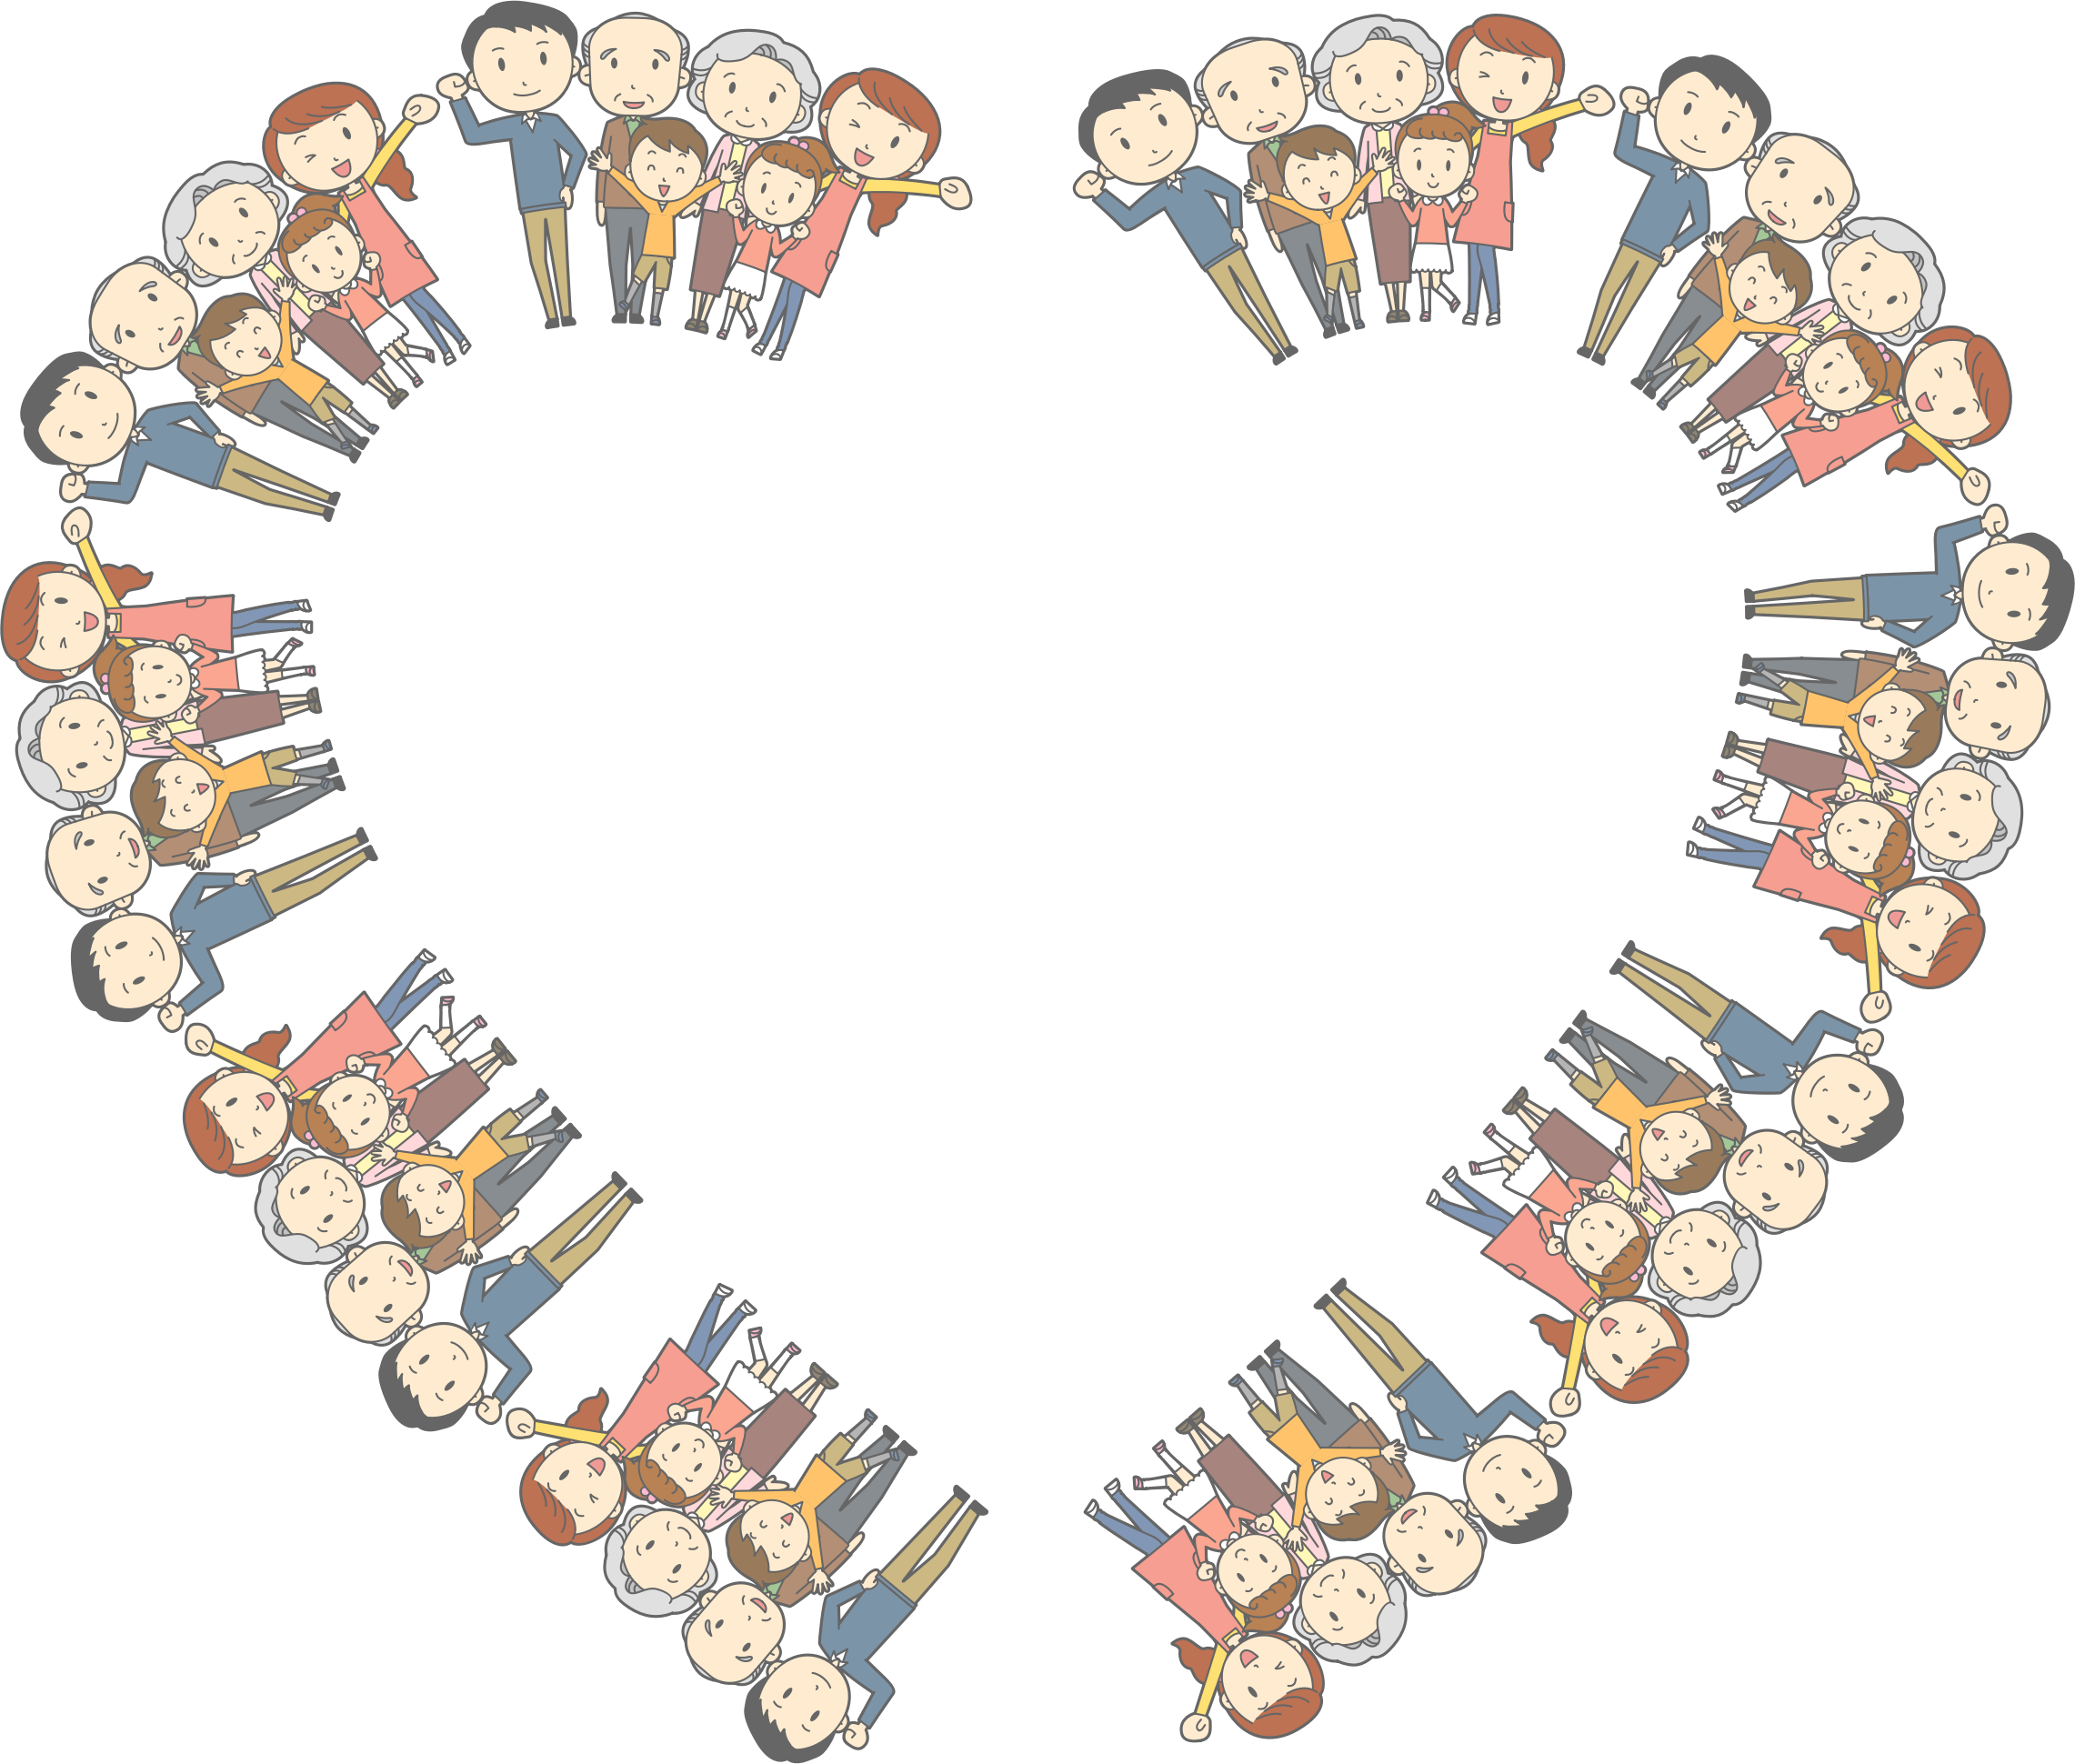 Clipart family heart graphic free library Clipart - MultiGenerational Family Heart Frame graphic free library